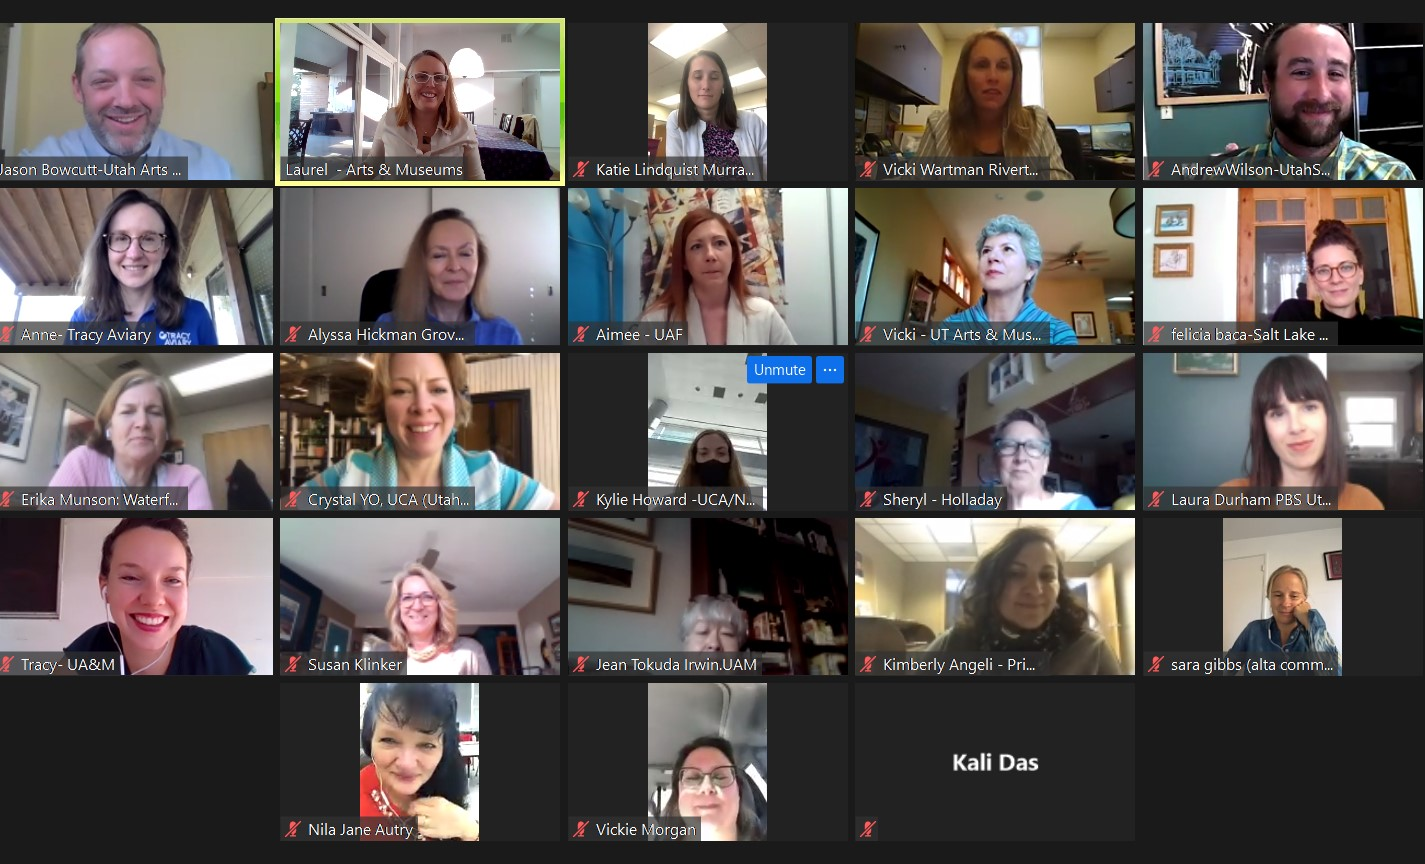 A screenshot of a Zoom video conference. The image contains a grid of square, each containing the image of a different individual.